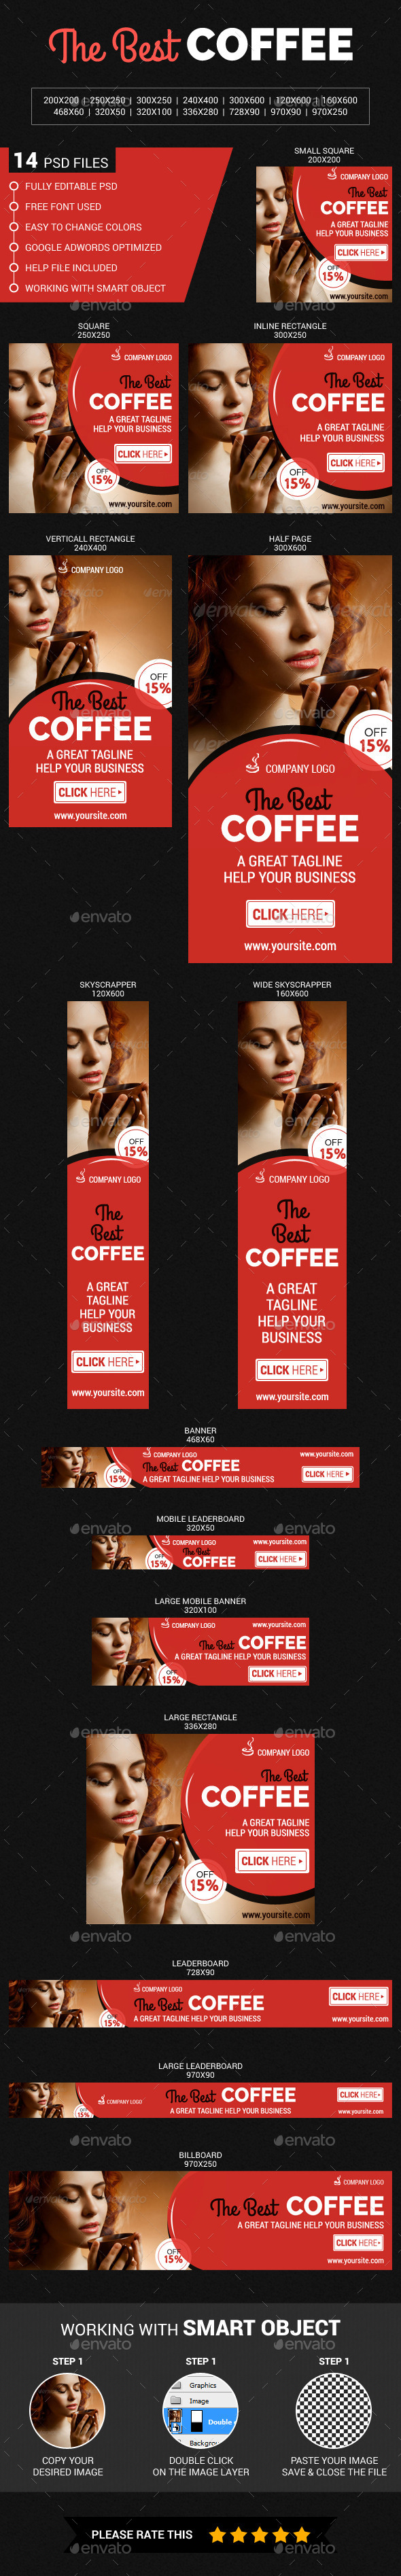 GraphicRiver The Best Coffee 11921501